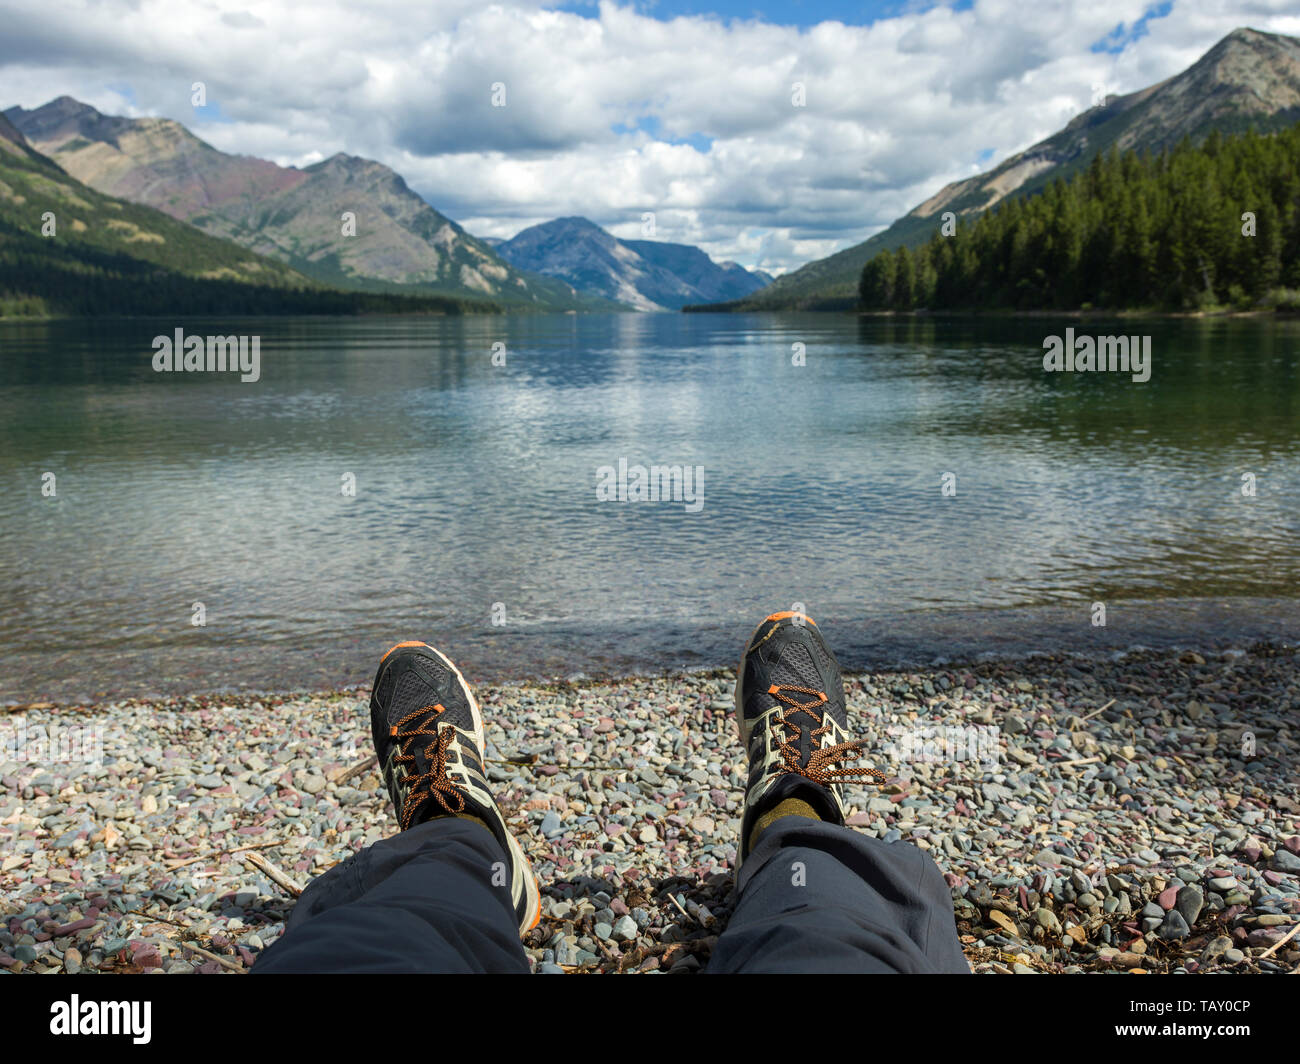 View of a person's feet with a lake and mountain range in the background, Waterton Lake, Waterton-Glacier International Peace Park, Waterton Lakes Nat - Stock Image